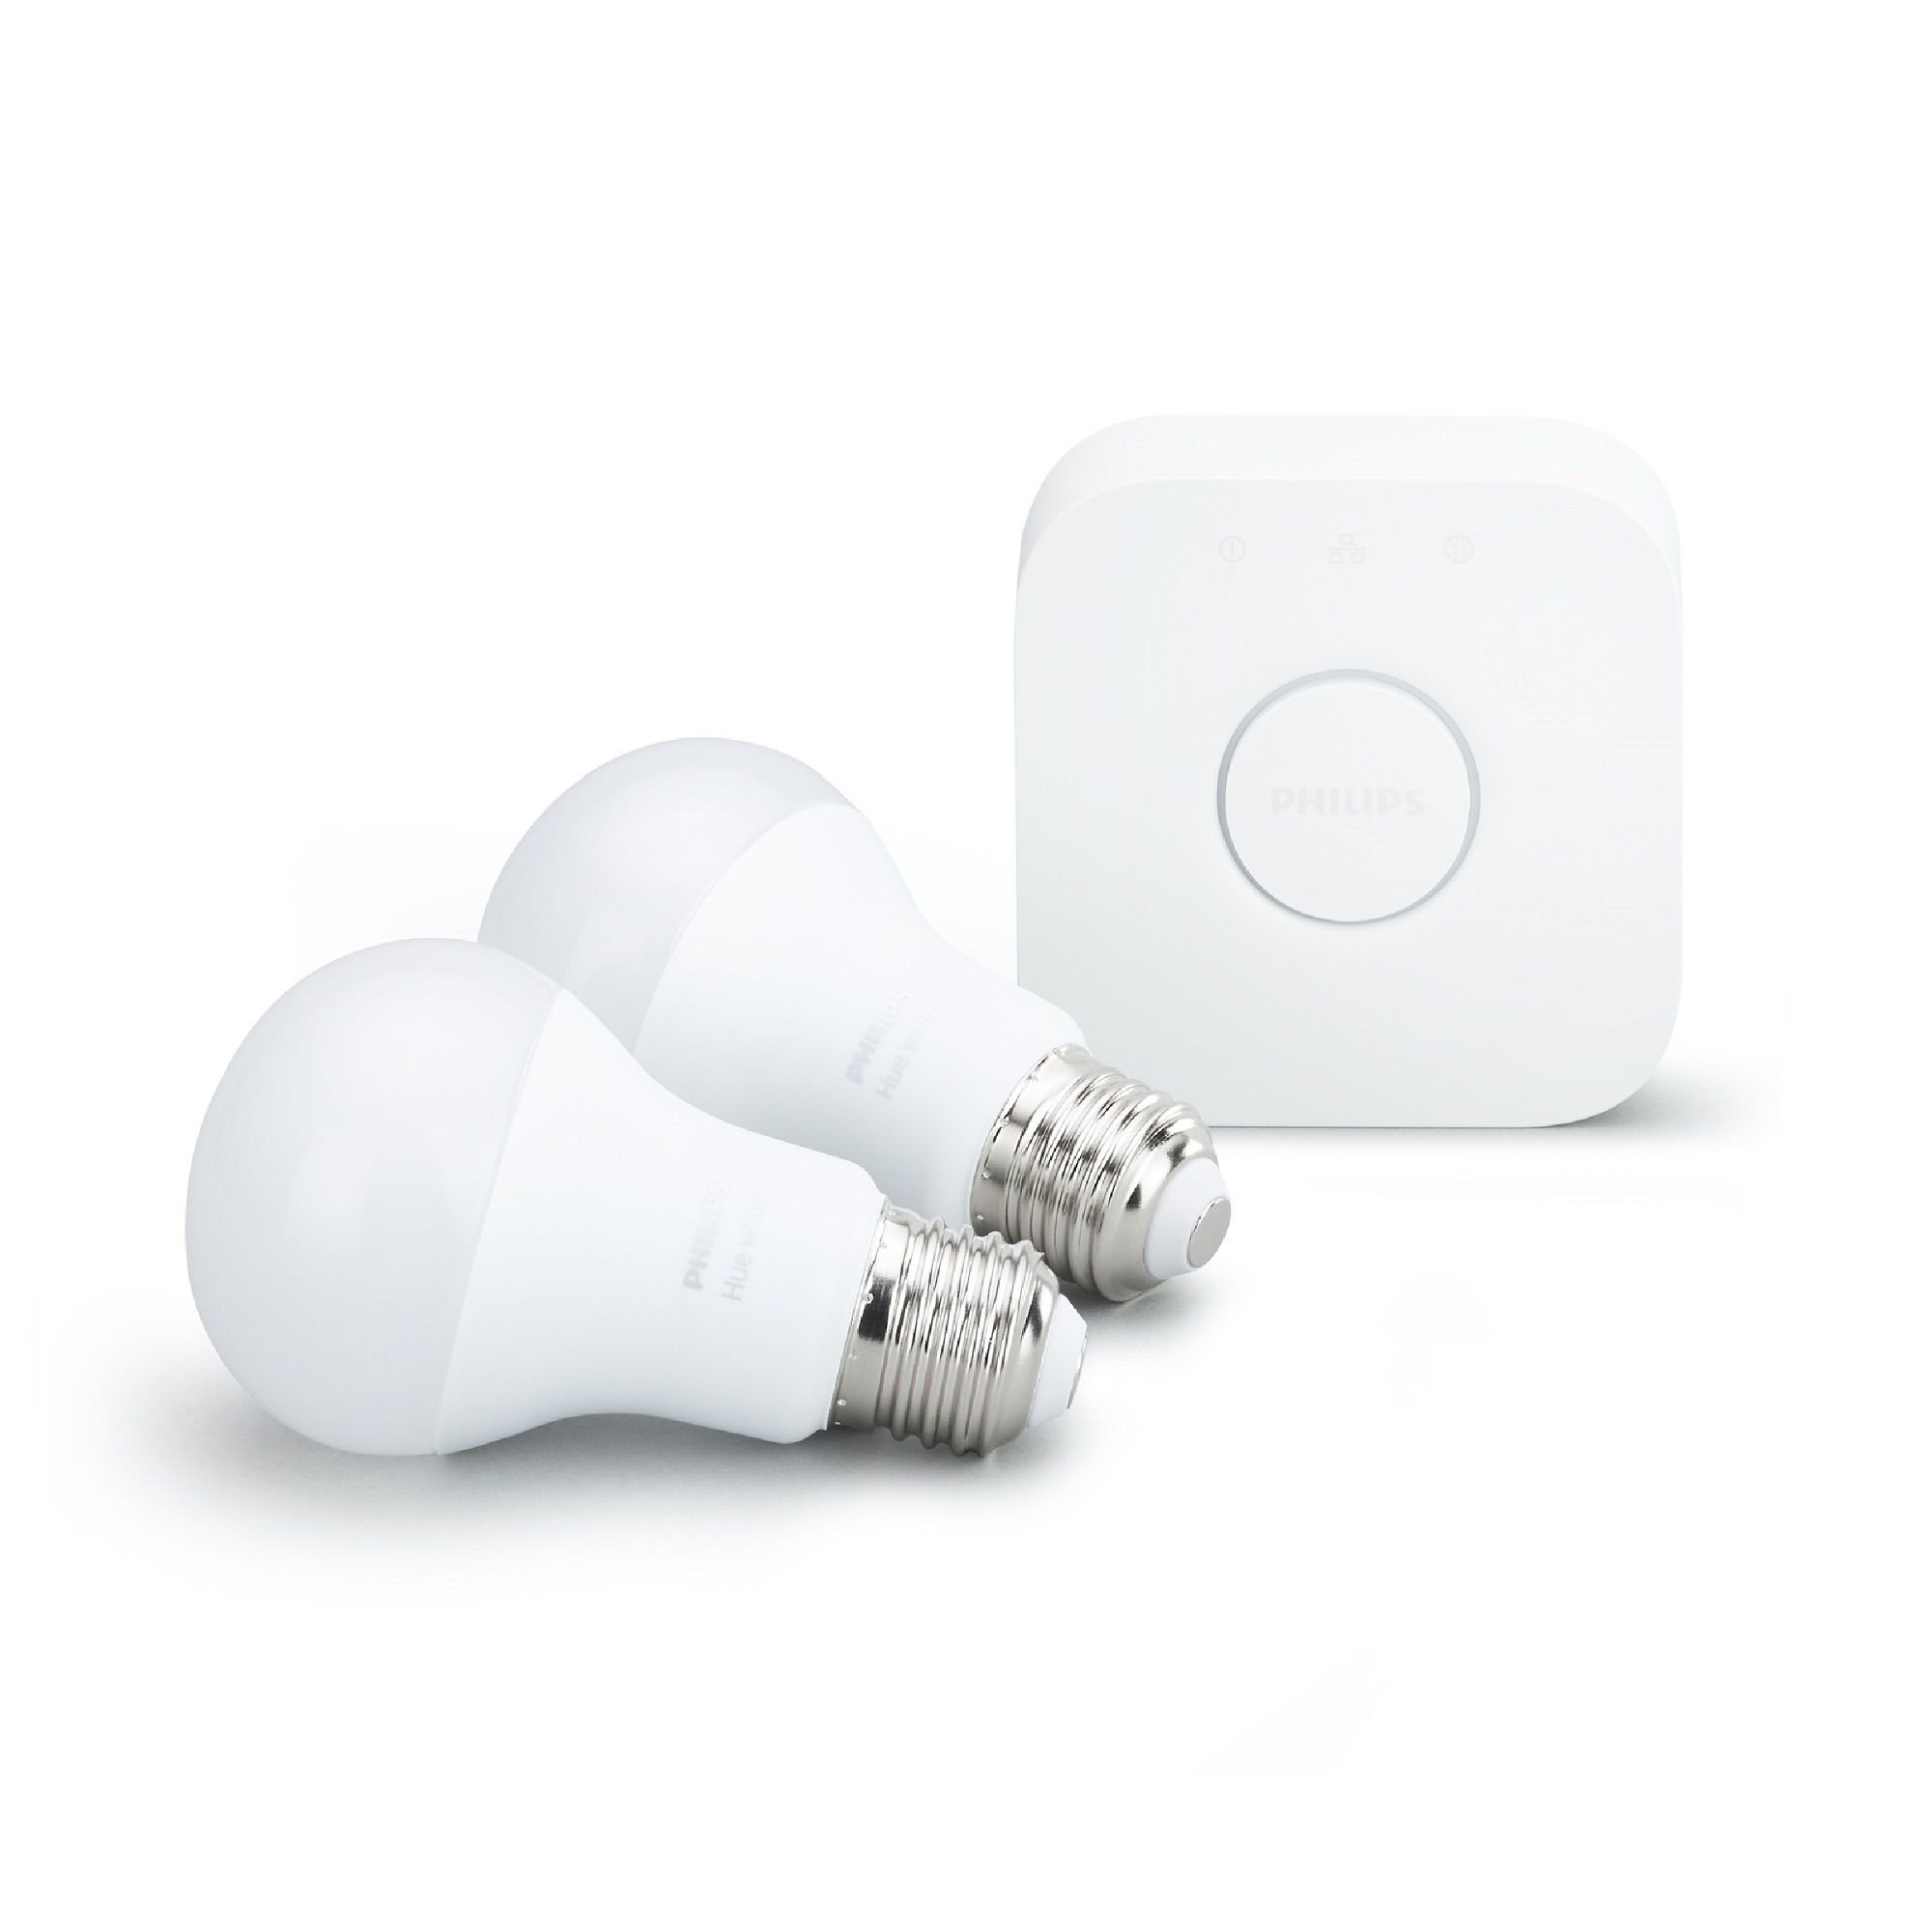 Philips Hue LED Smart Light Bulb Starter Pack with Bridge ...